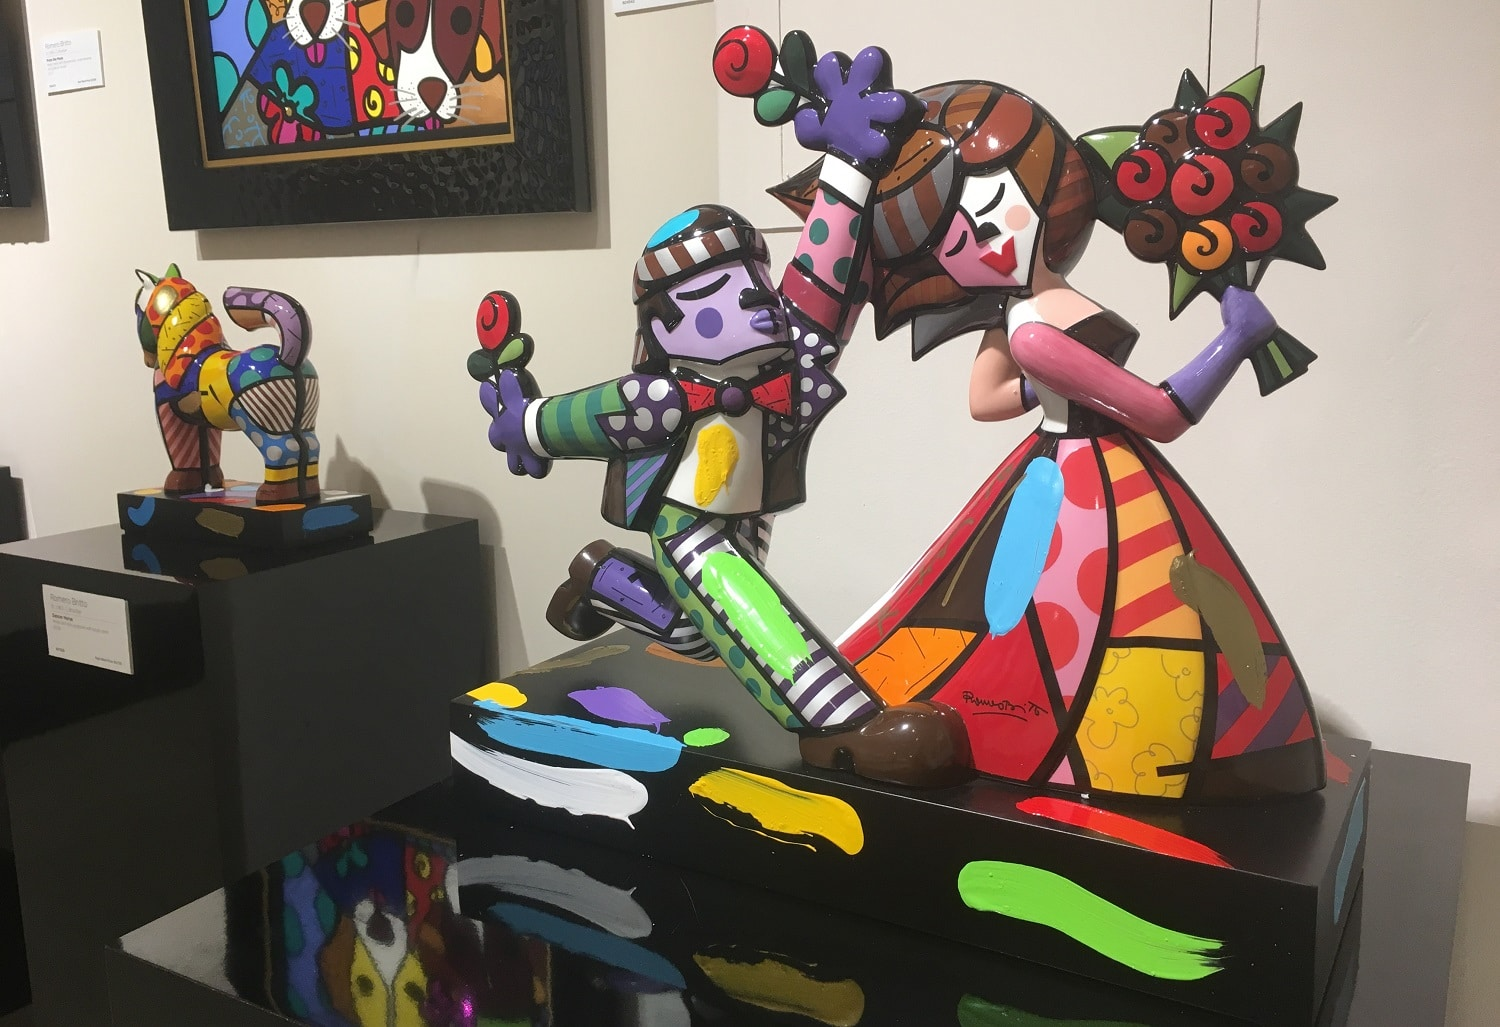 """Follow Me"" (2018) by Romero Britto, sculpture"